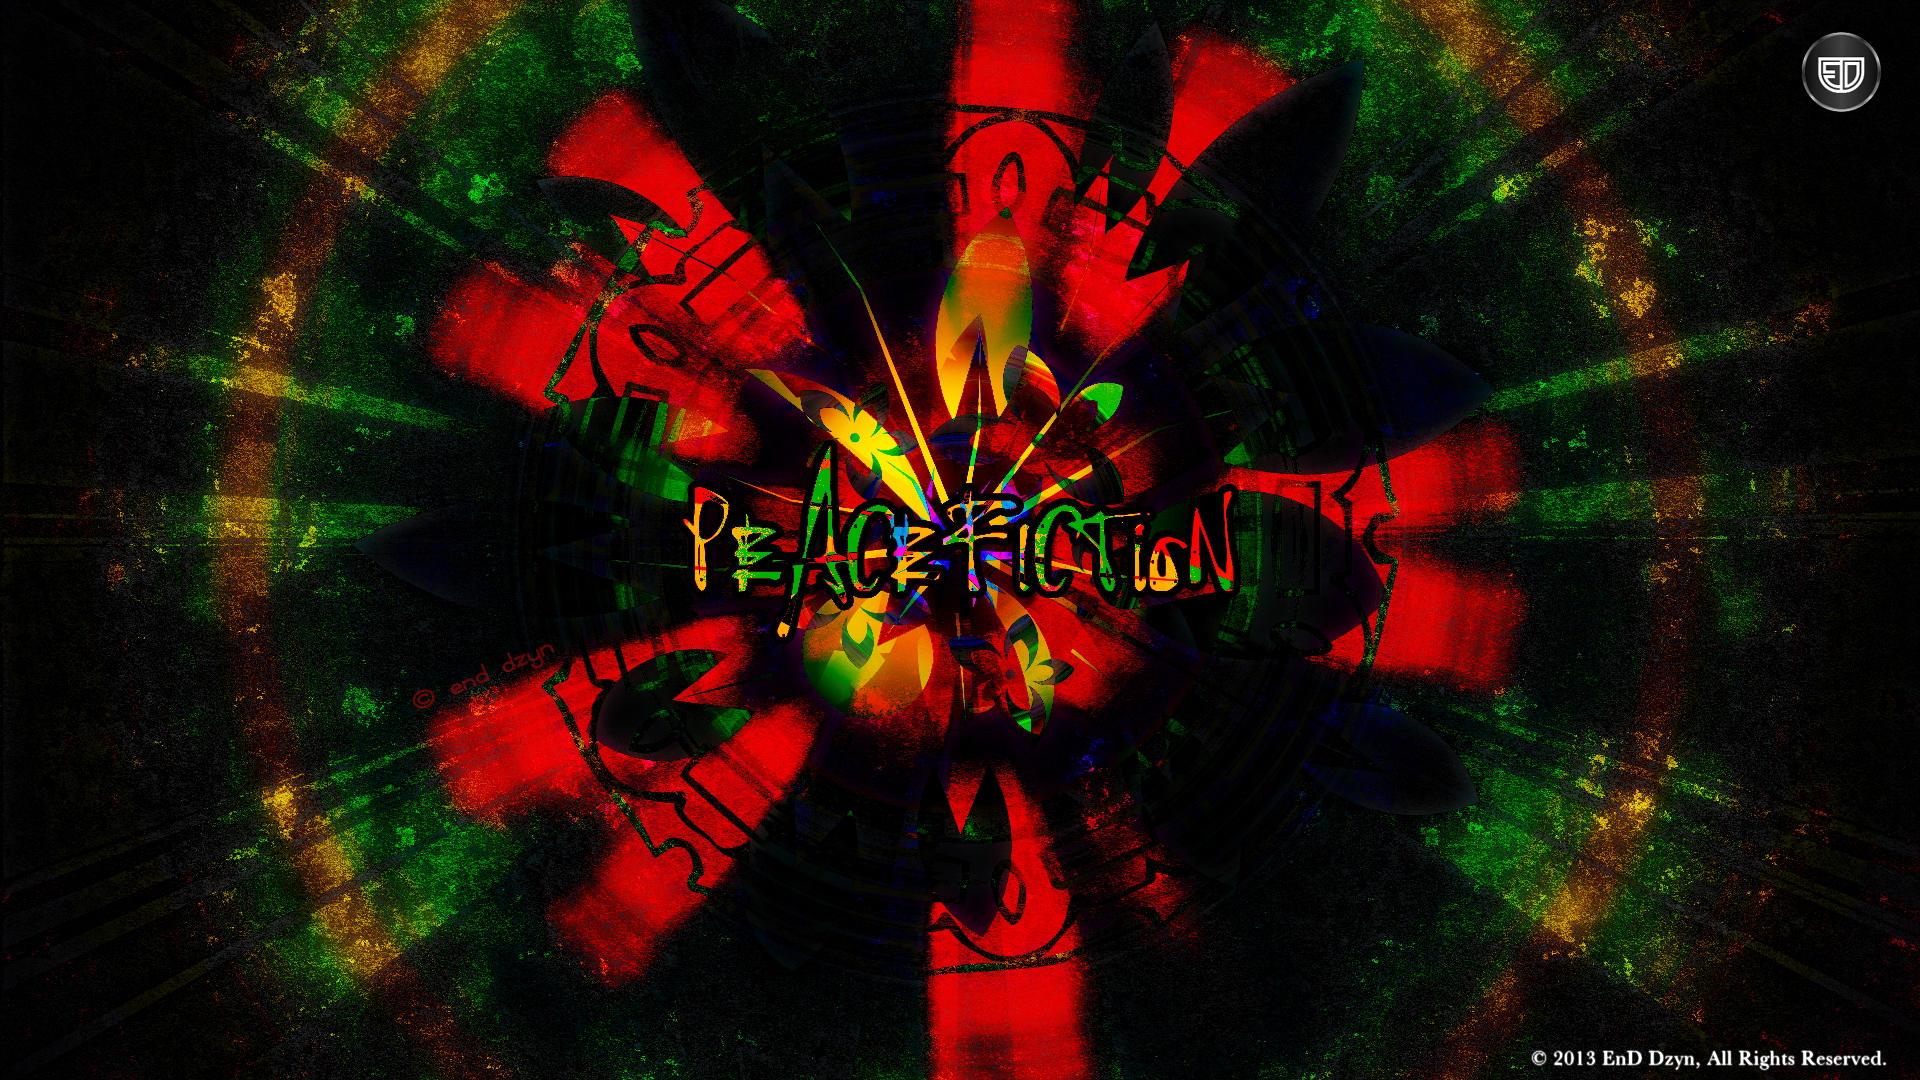 Peacefiction Graffiti Abstract HD Wallpaper Backgrounds   EnD Dzyn 1920x1080